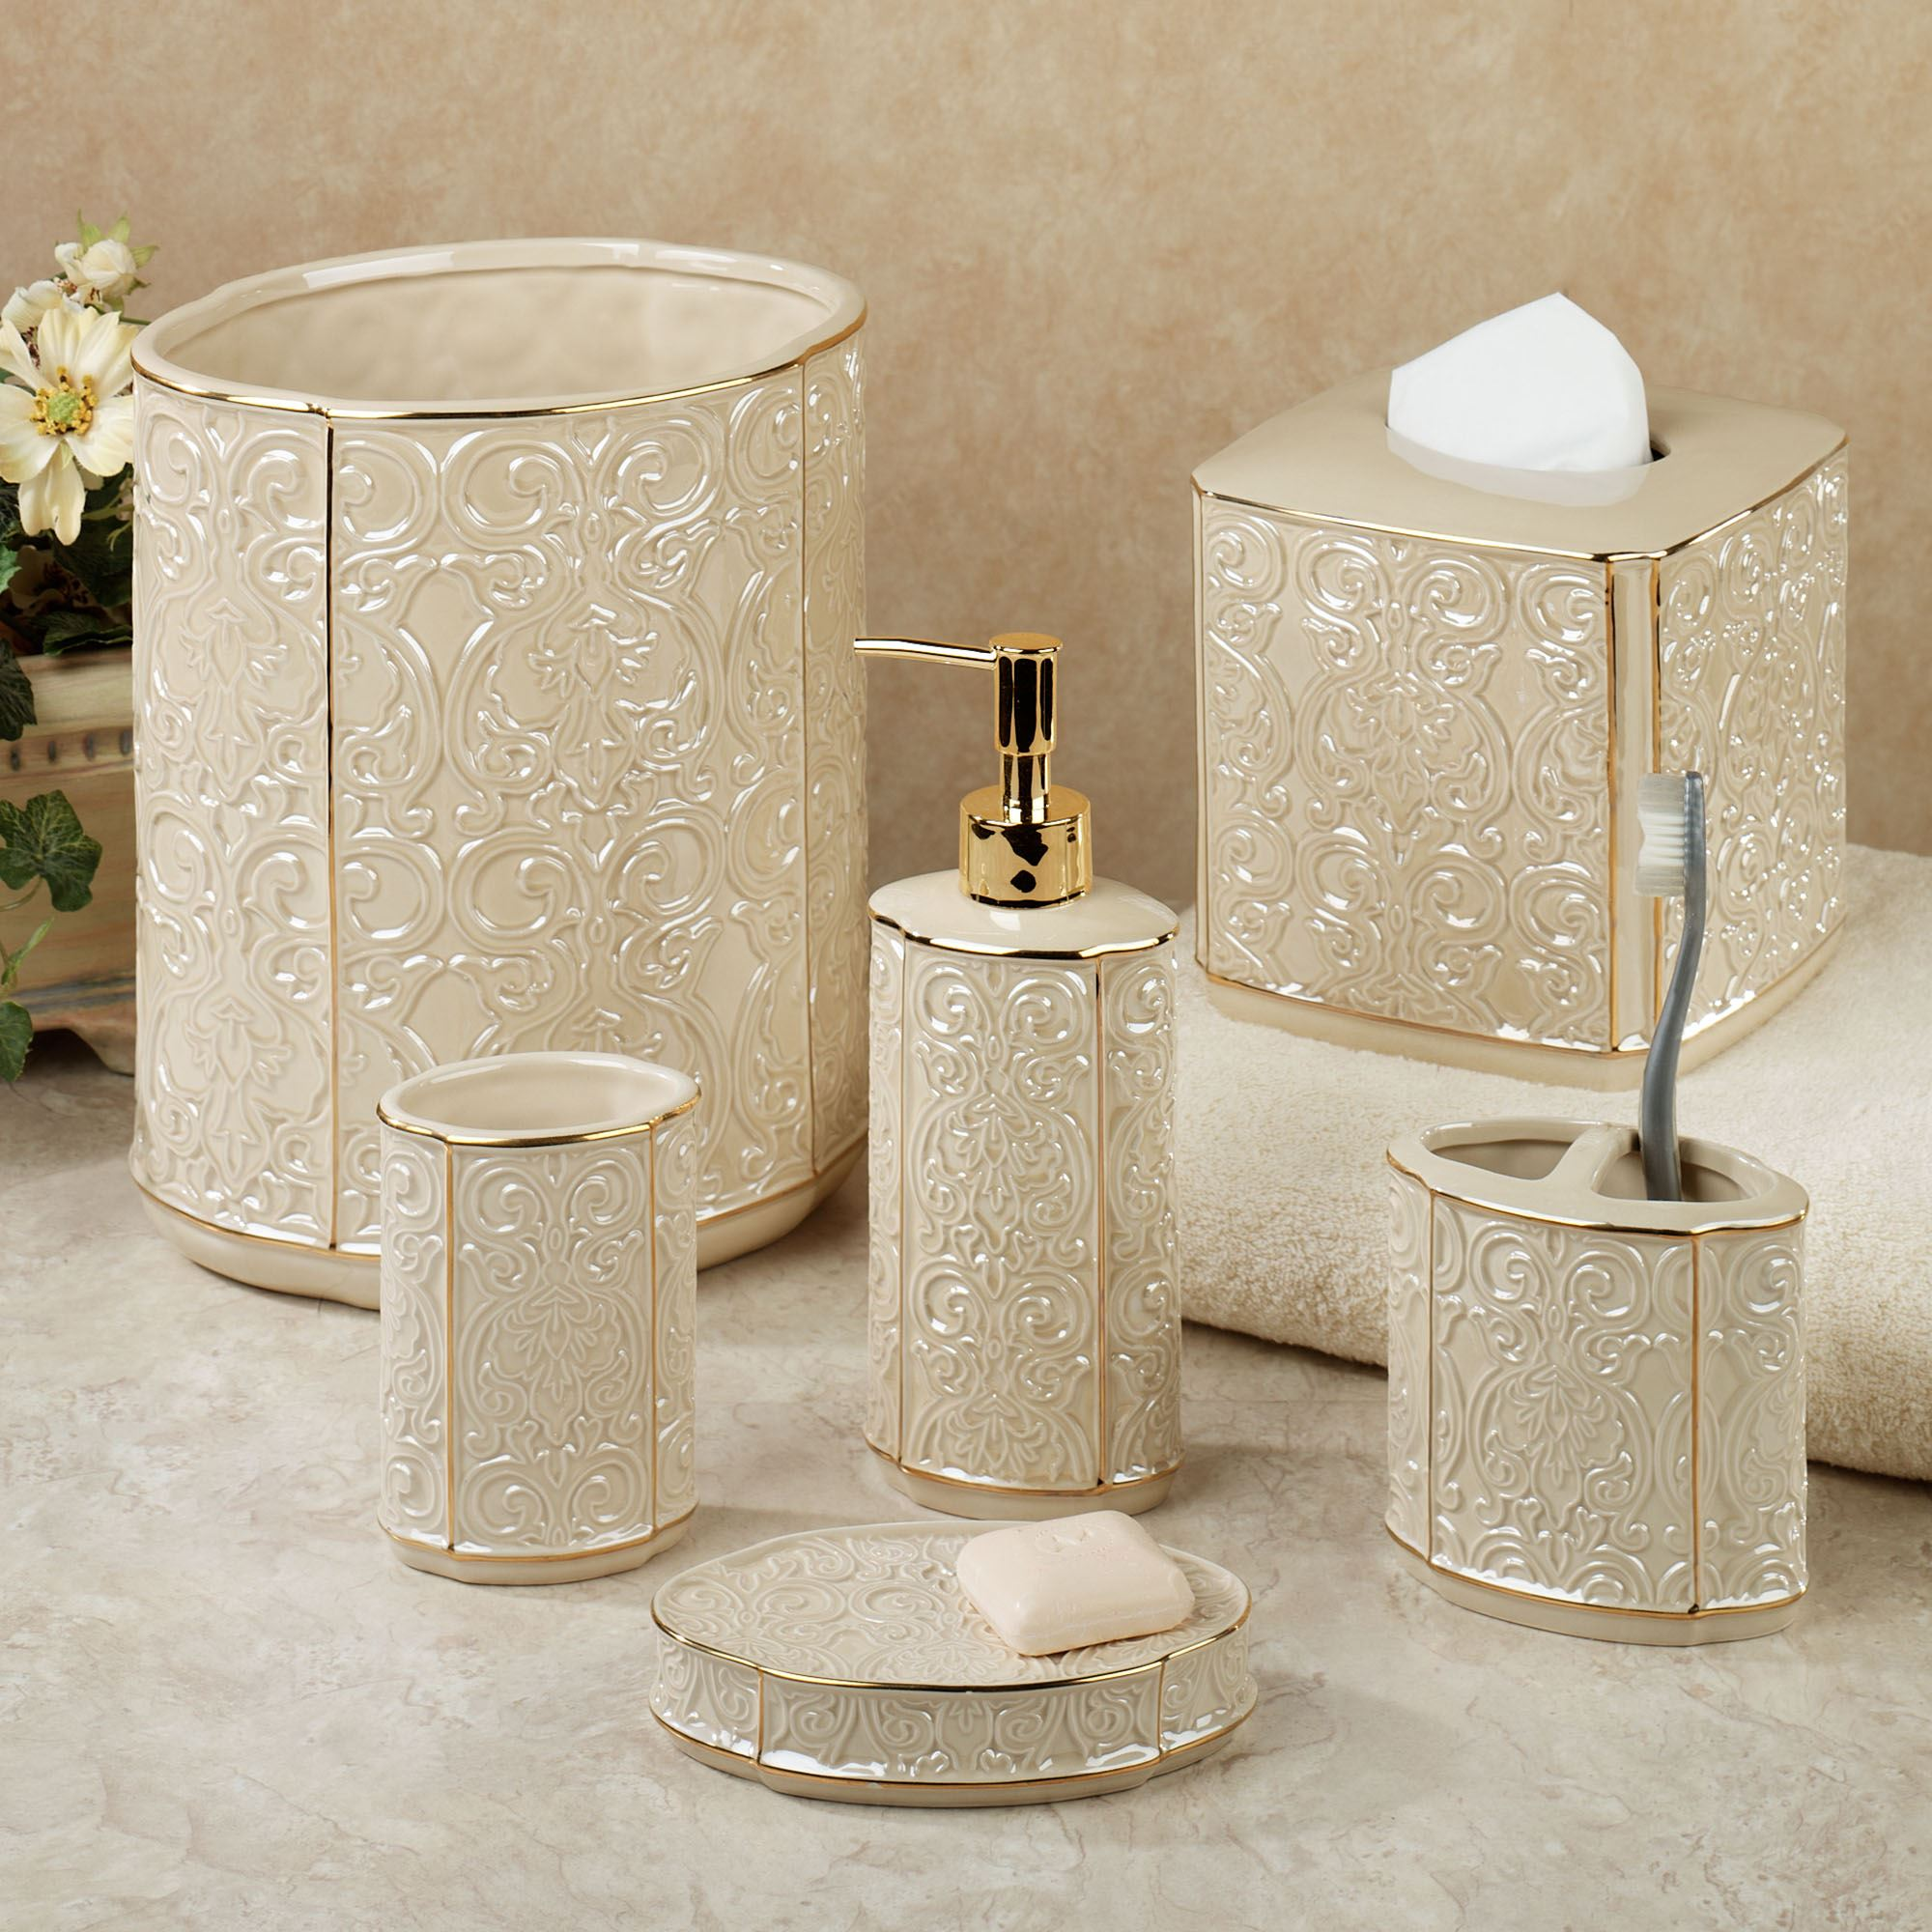 Furla cream damask ceramic bath accessories for Gold bathroom accessories sets